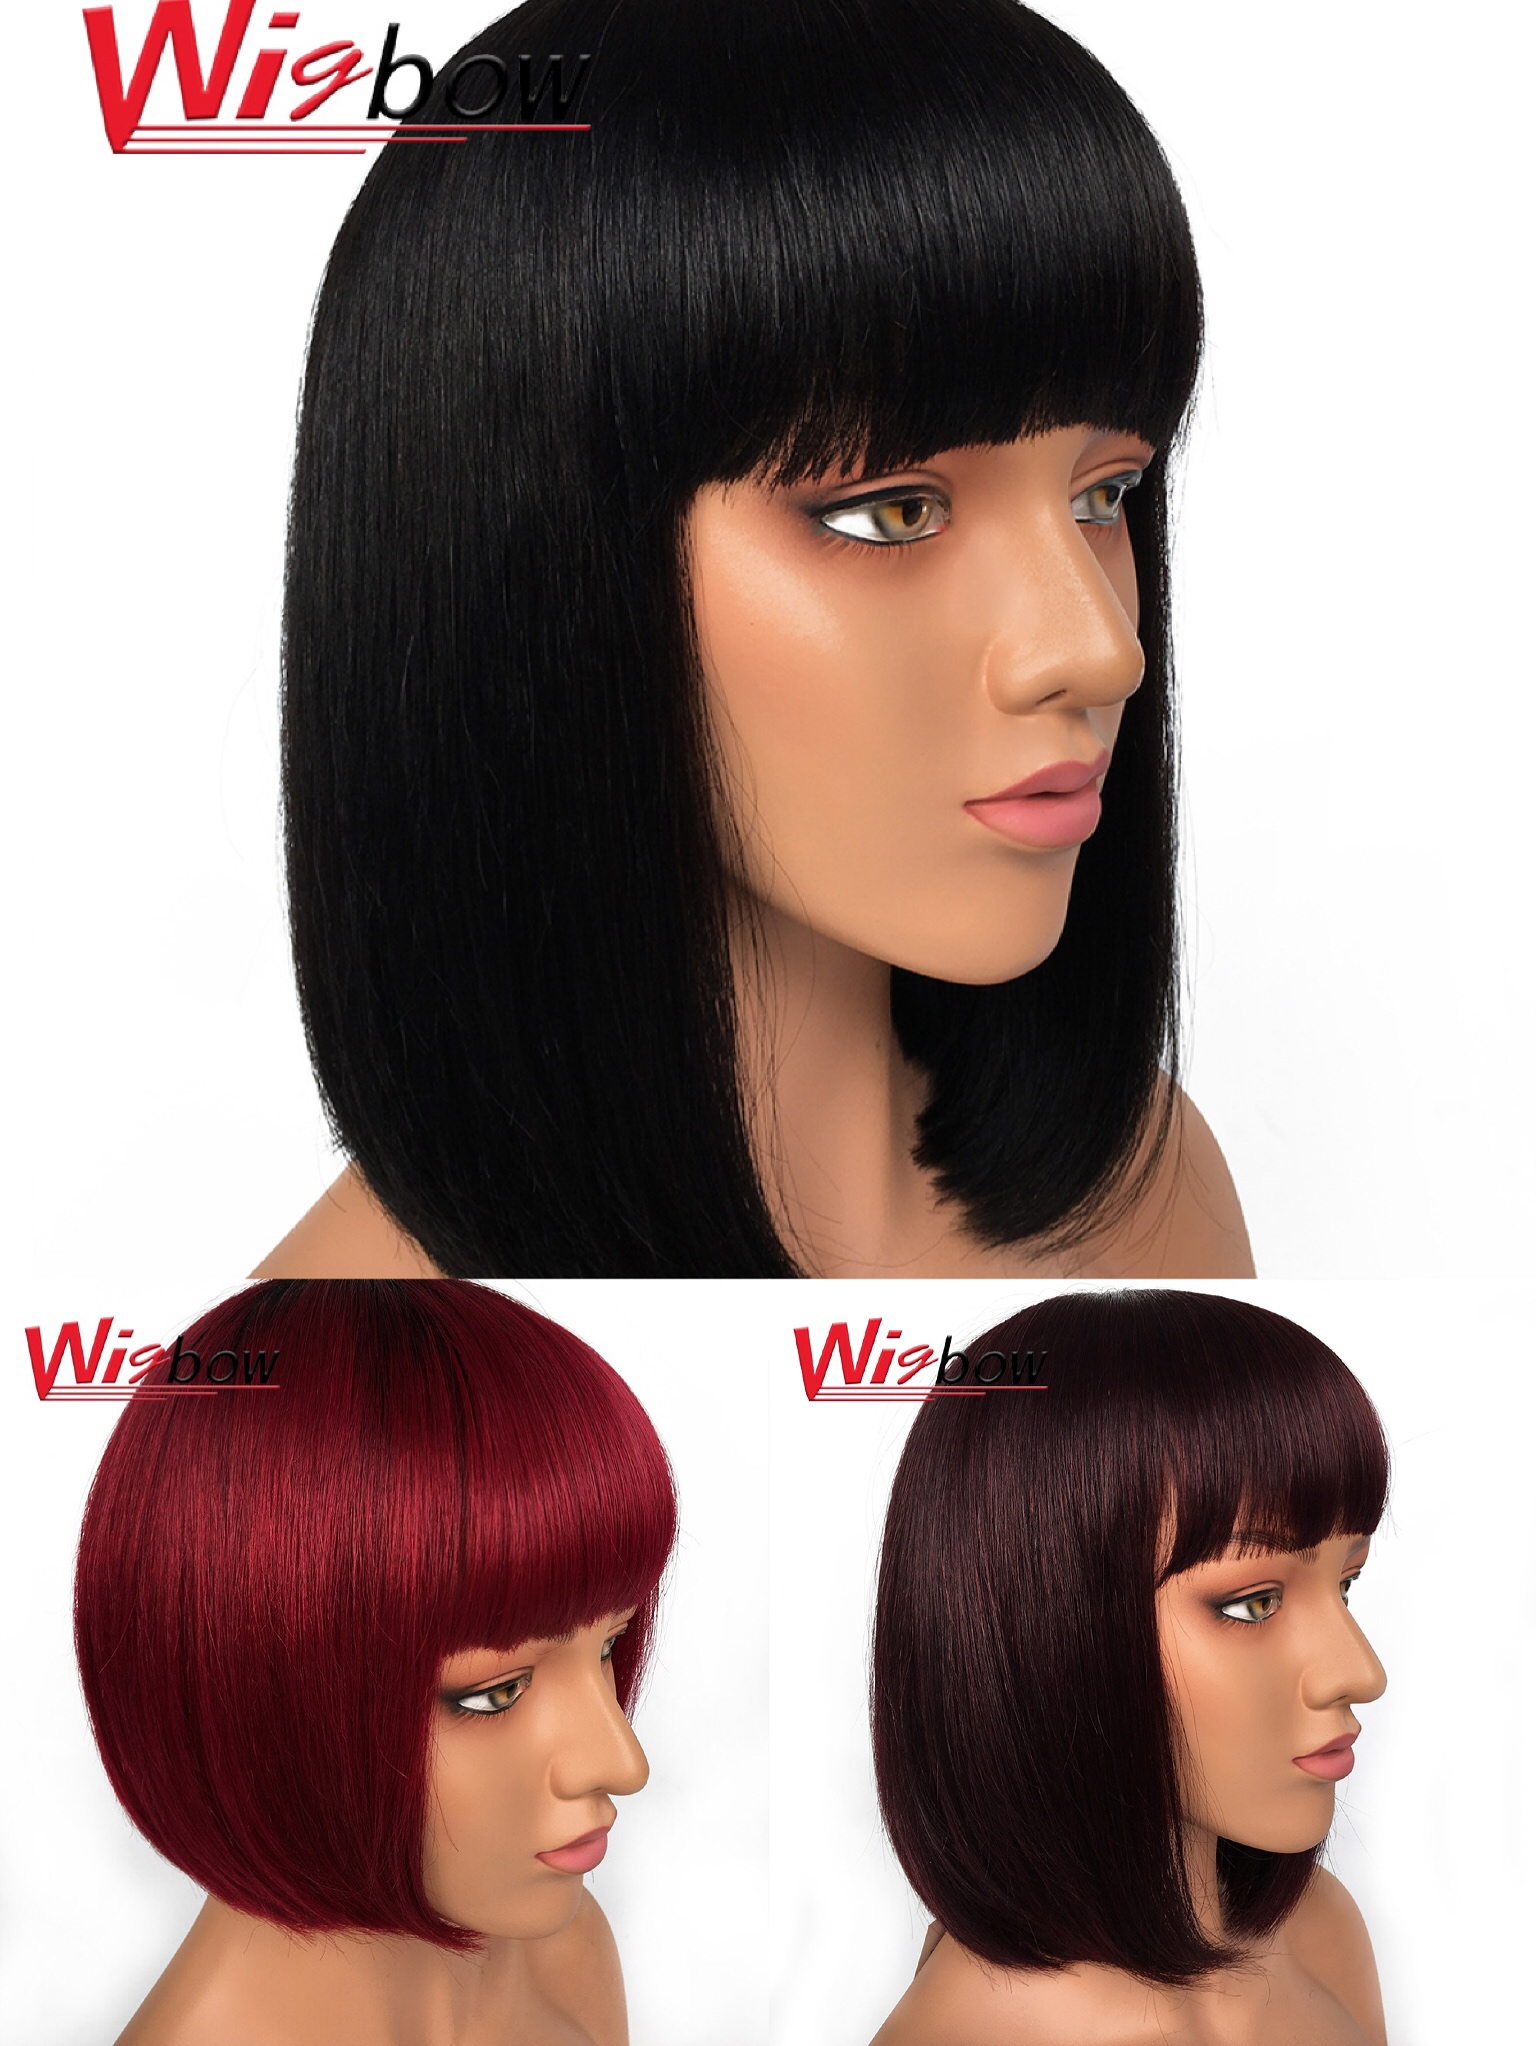 Short Bob Wig Straight Bob With Bangs Human Hair Wigs Peruvian Remy Hair In Color T1B/99J/BG 1B Wigbow Ships For Free